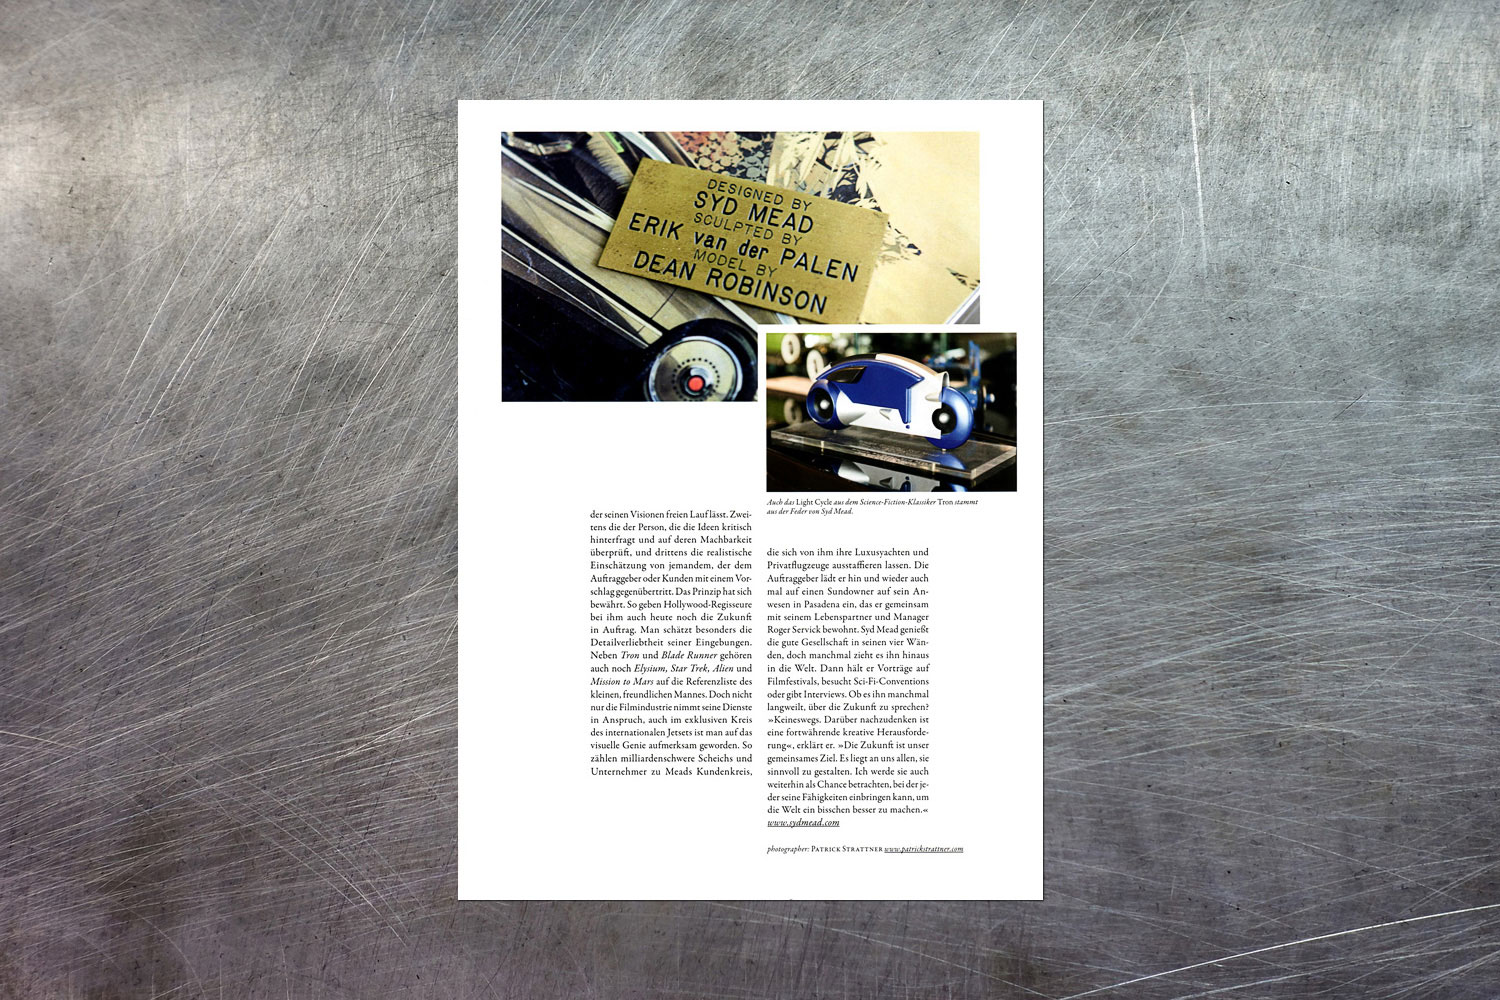 PATRICK STRATTNER PHOTOGRAPHY | TEAR SHEETS | Syd Mead / LOVED & FOUND.